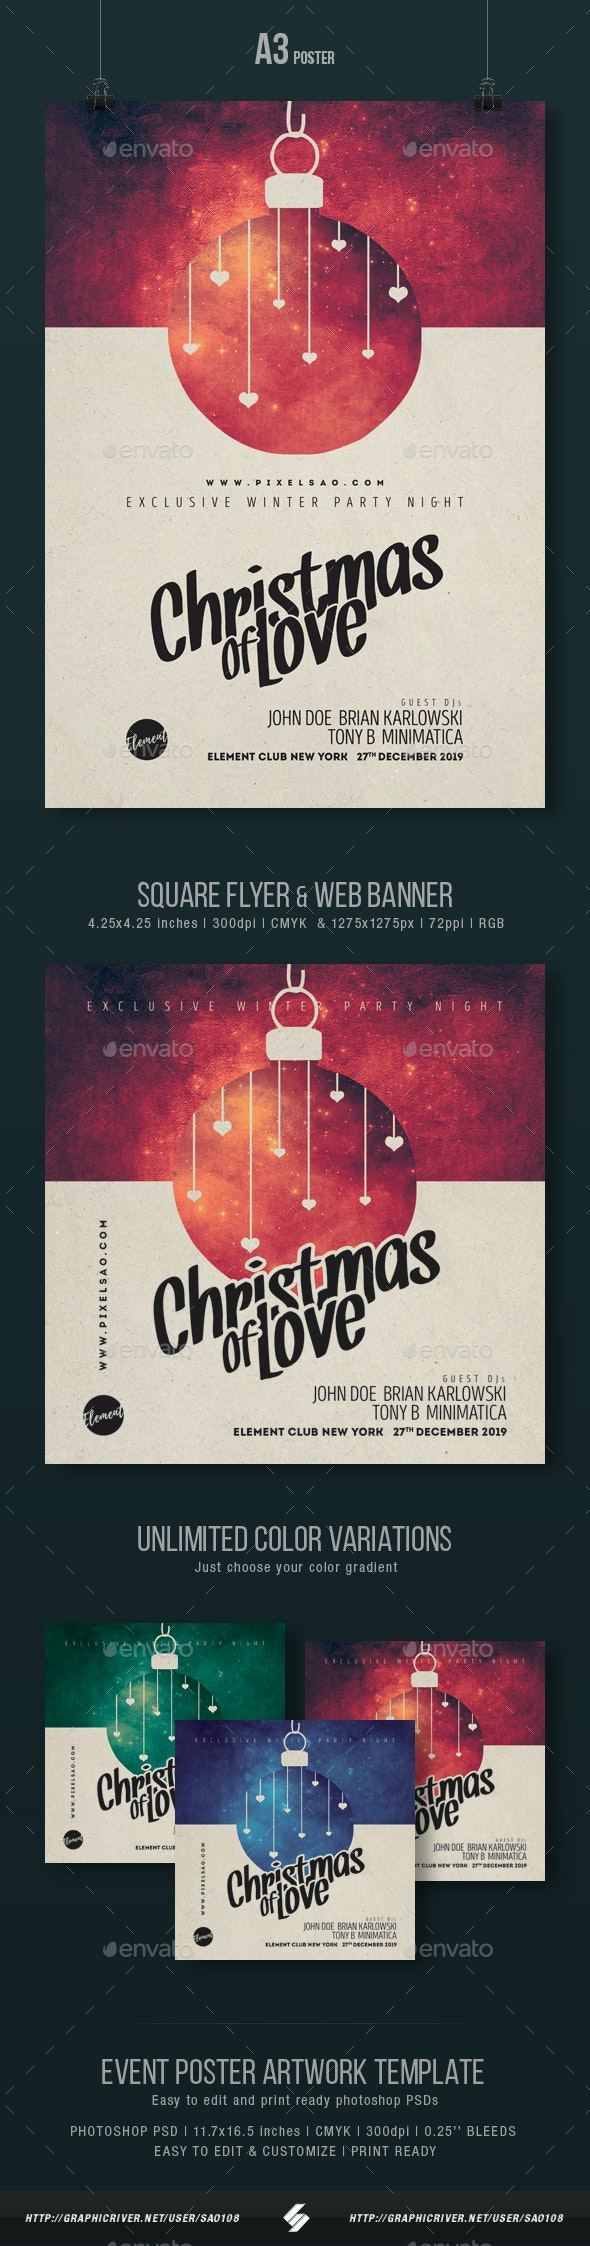 Christmas of Love - Party Flyer / Poster Artwork Template A3 - Events Flyers